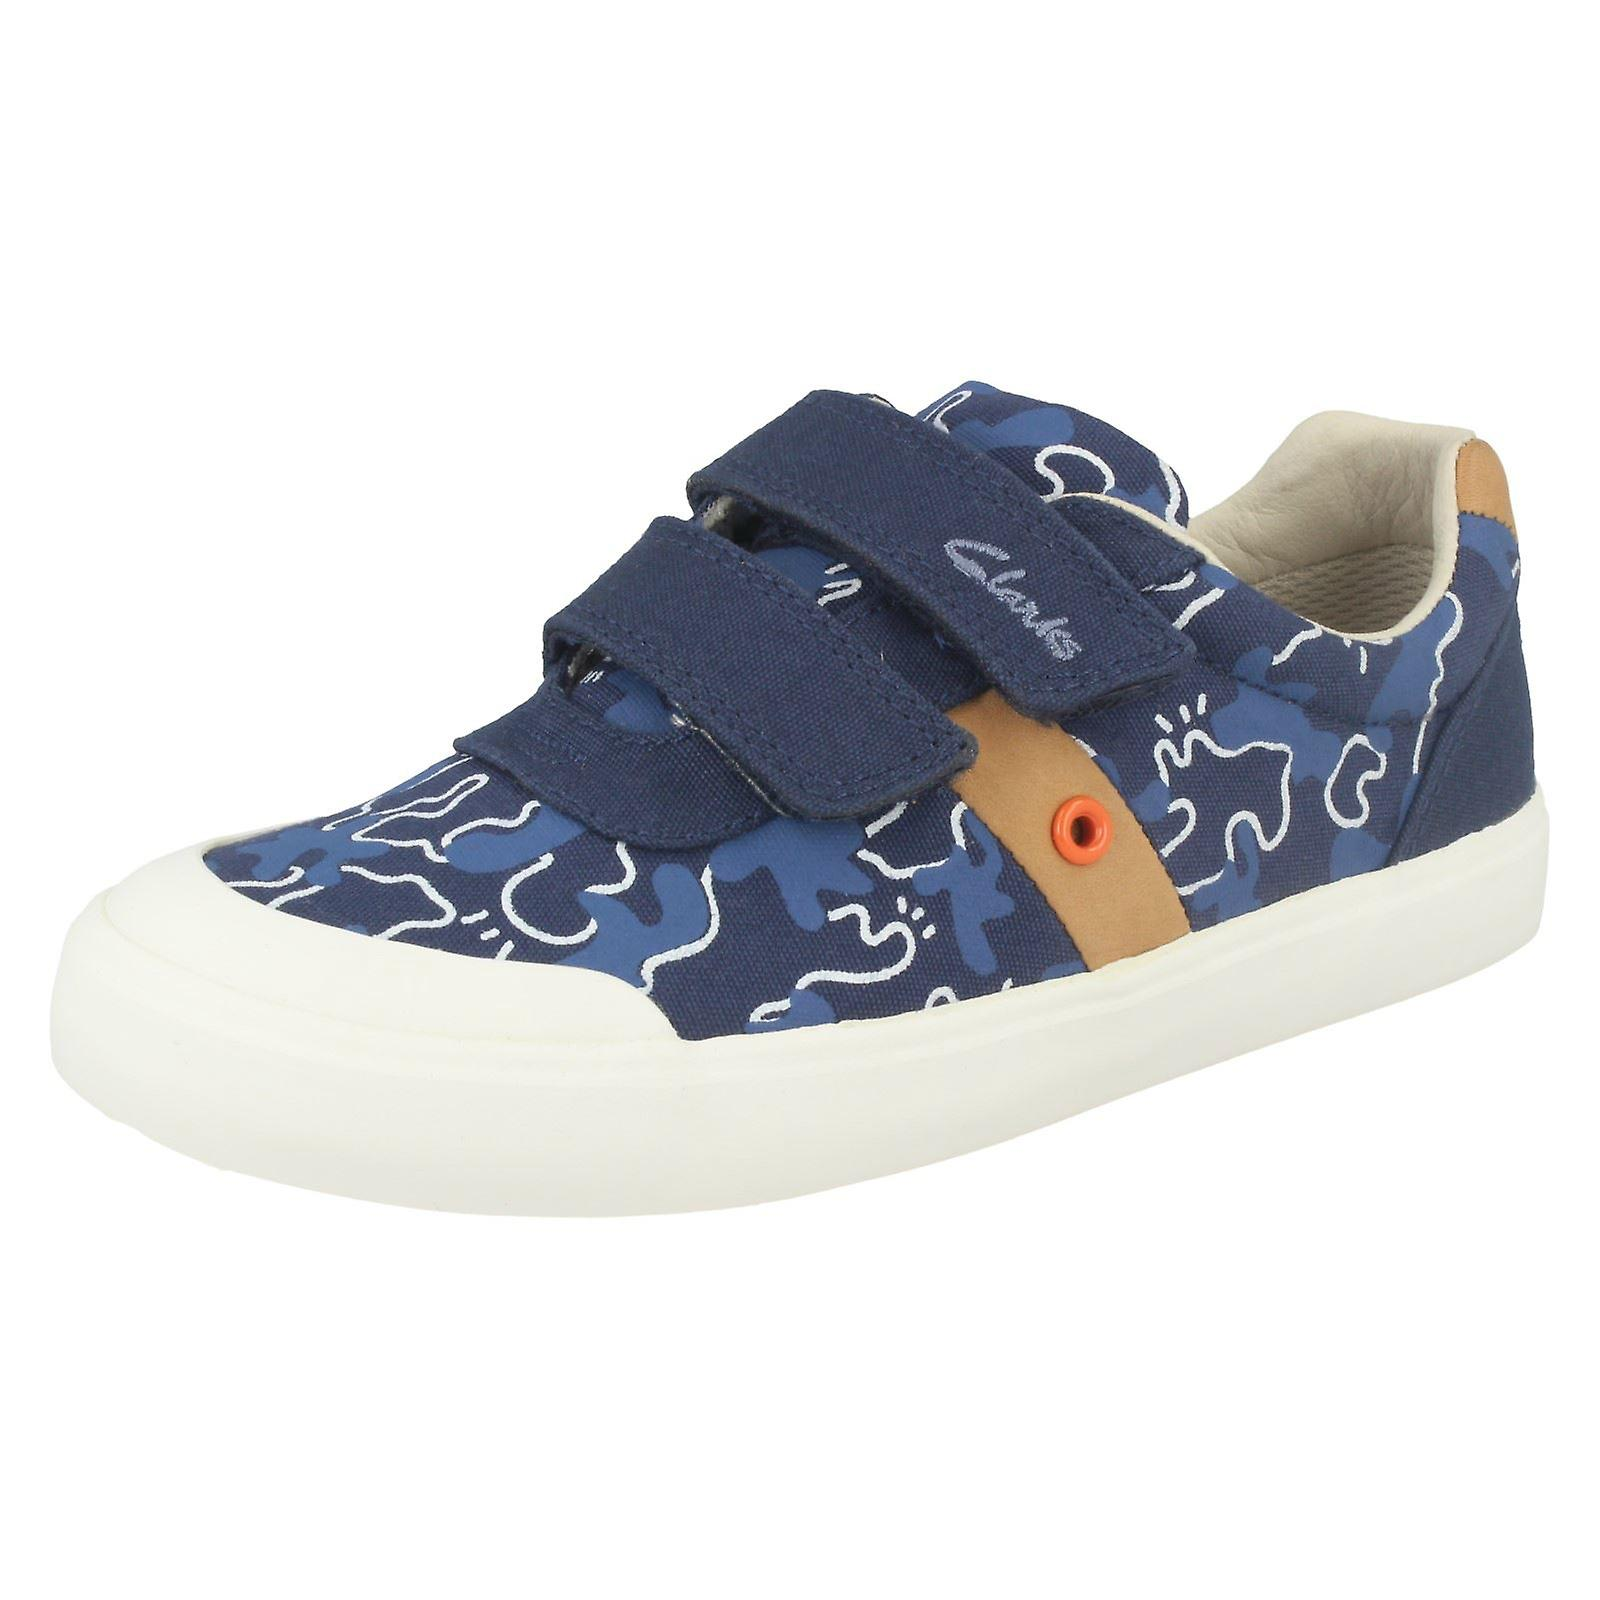 Boys Clarks Modern Canvas Shoes Comic Zone: Modern Clarks And Elegant In Fashion :Men's/Women's 9852d4